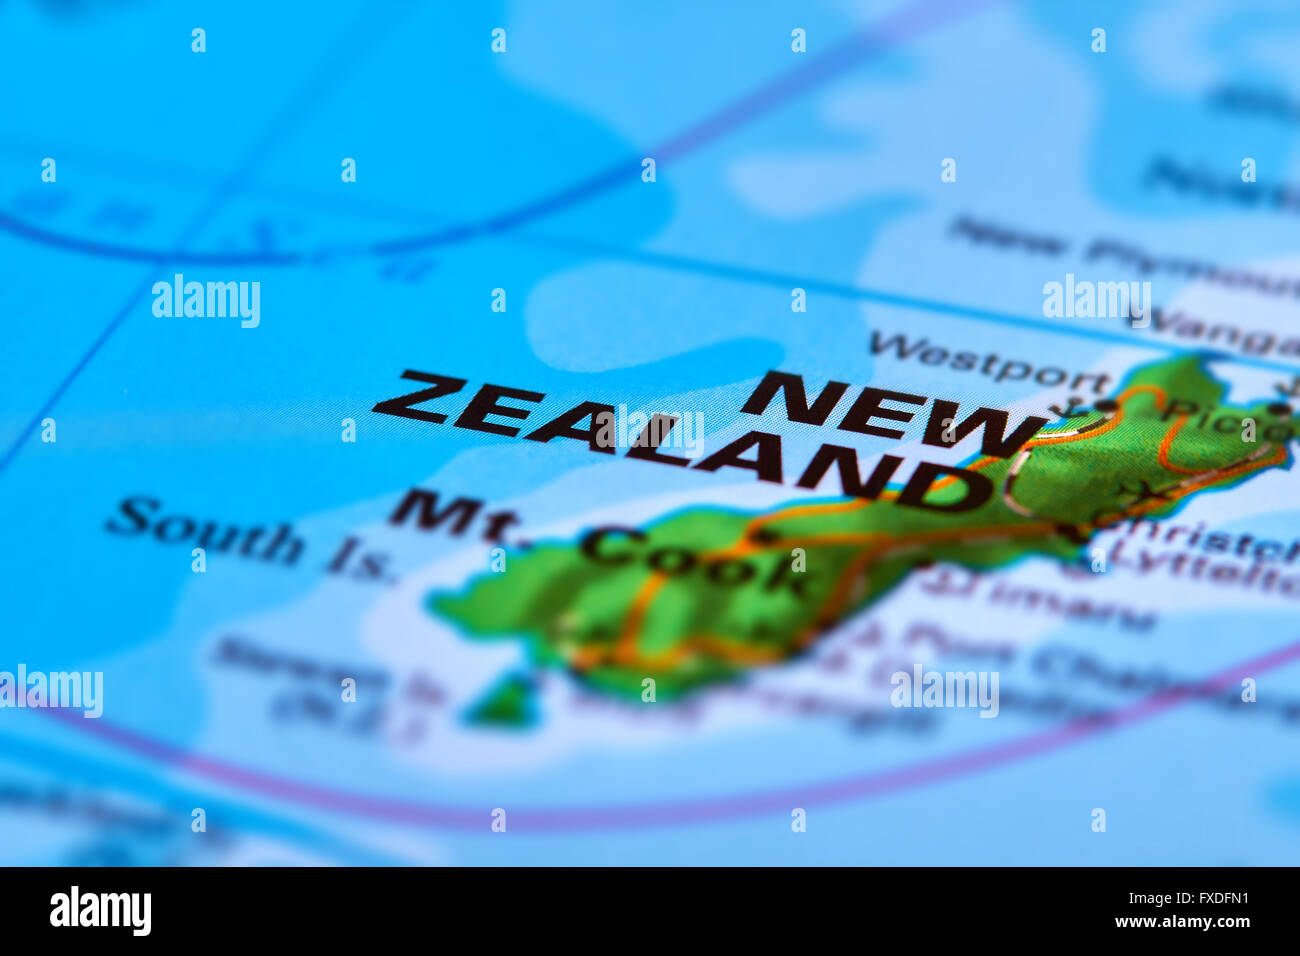 New zealand country on the world map stock photo 102330621 alamy new zealand country on the world map gumiabroncs Choice Image